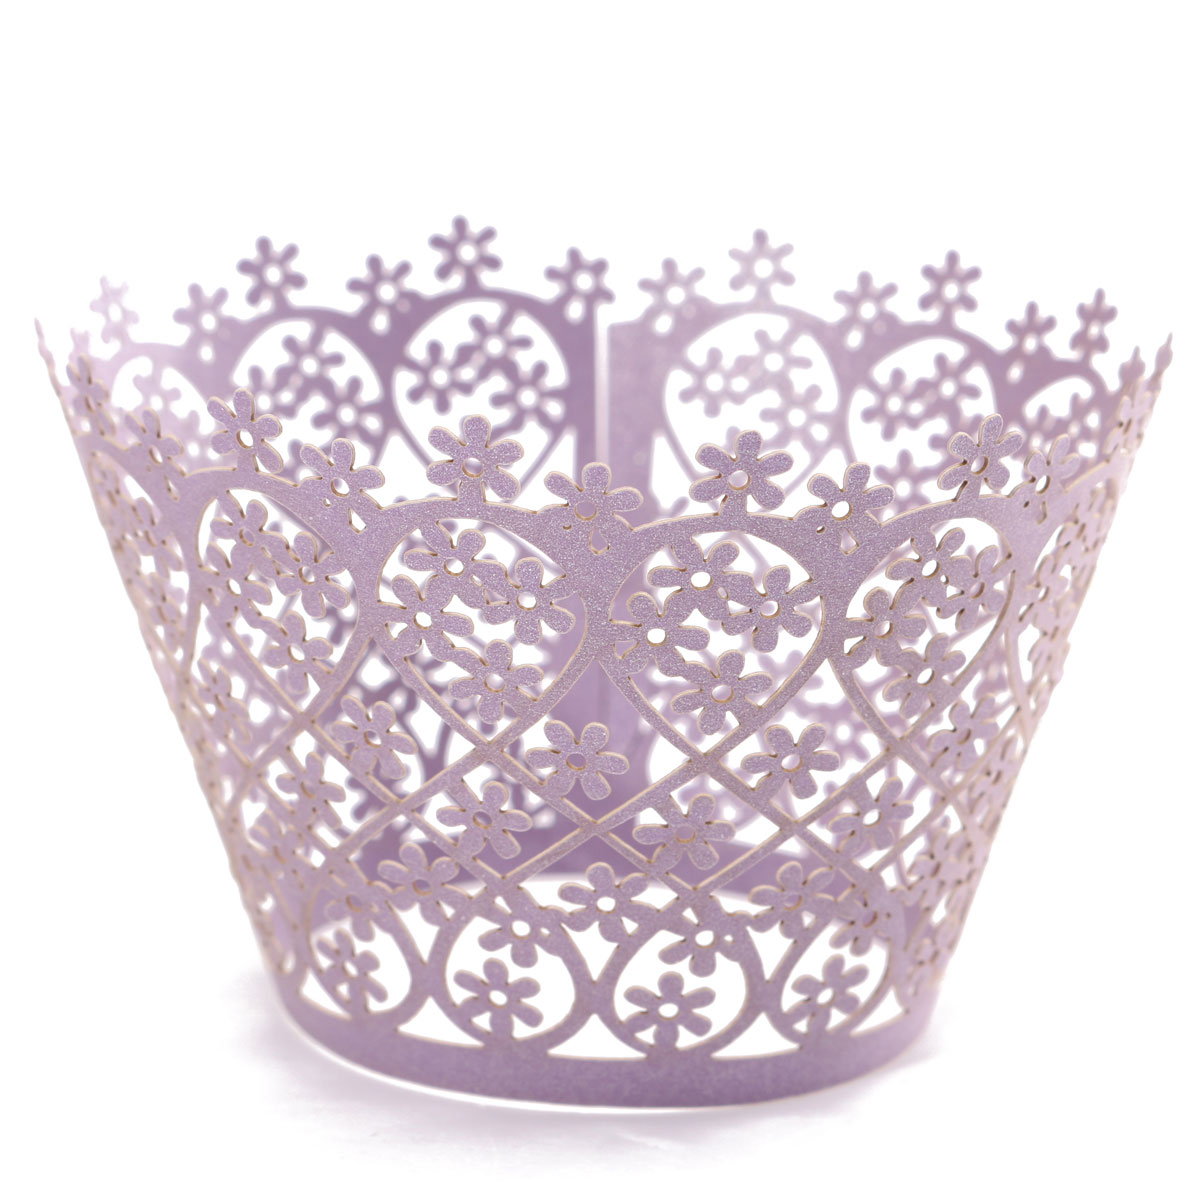 12Pcs Pearly Paper Love Style Vine Lace Cup Cake Wrappers Table Decoration Graduation Cake Decorating Supplies,lilac color